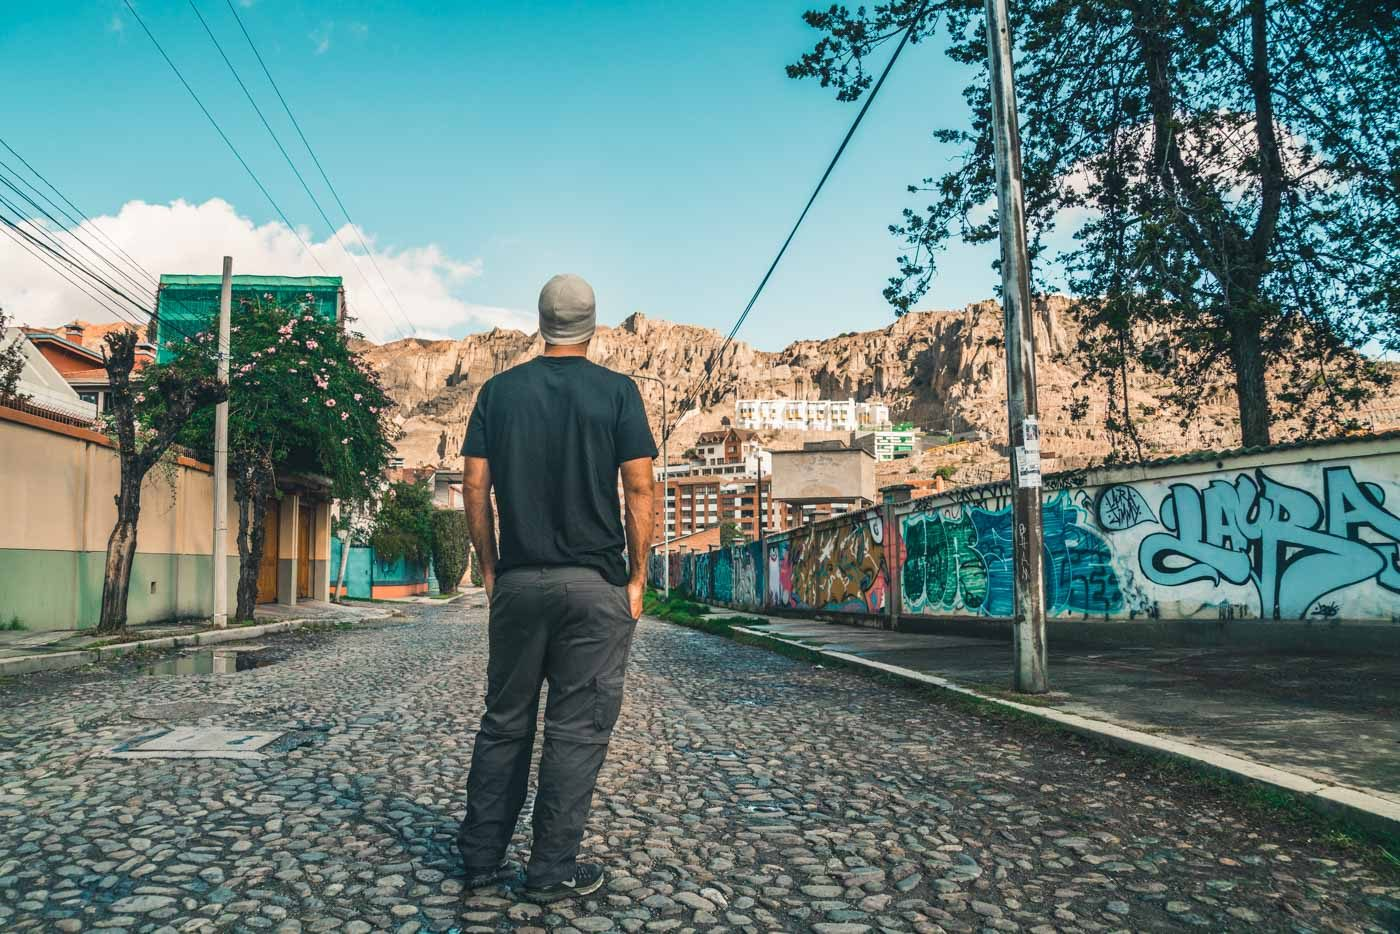 Max wearing his Unbound t-shirt for the eco friendly gift guide while exploring La Paz, Bolivia